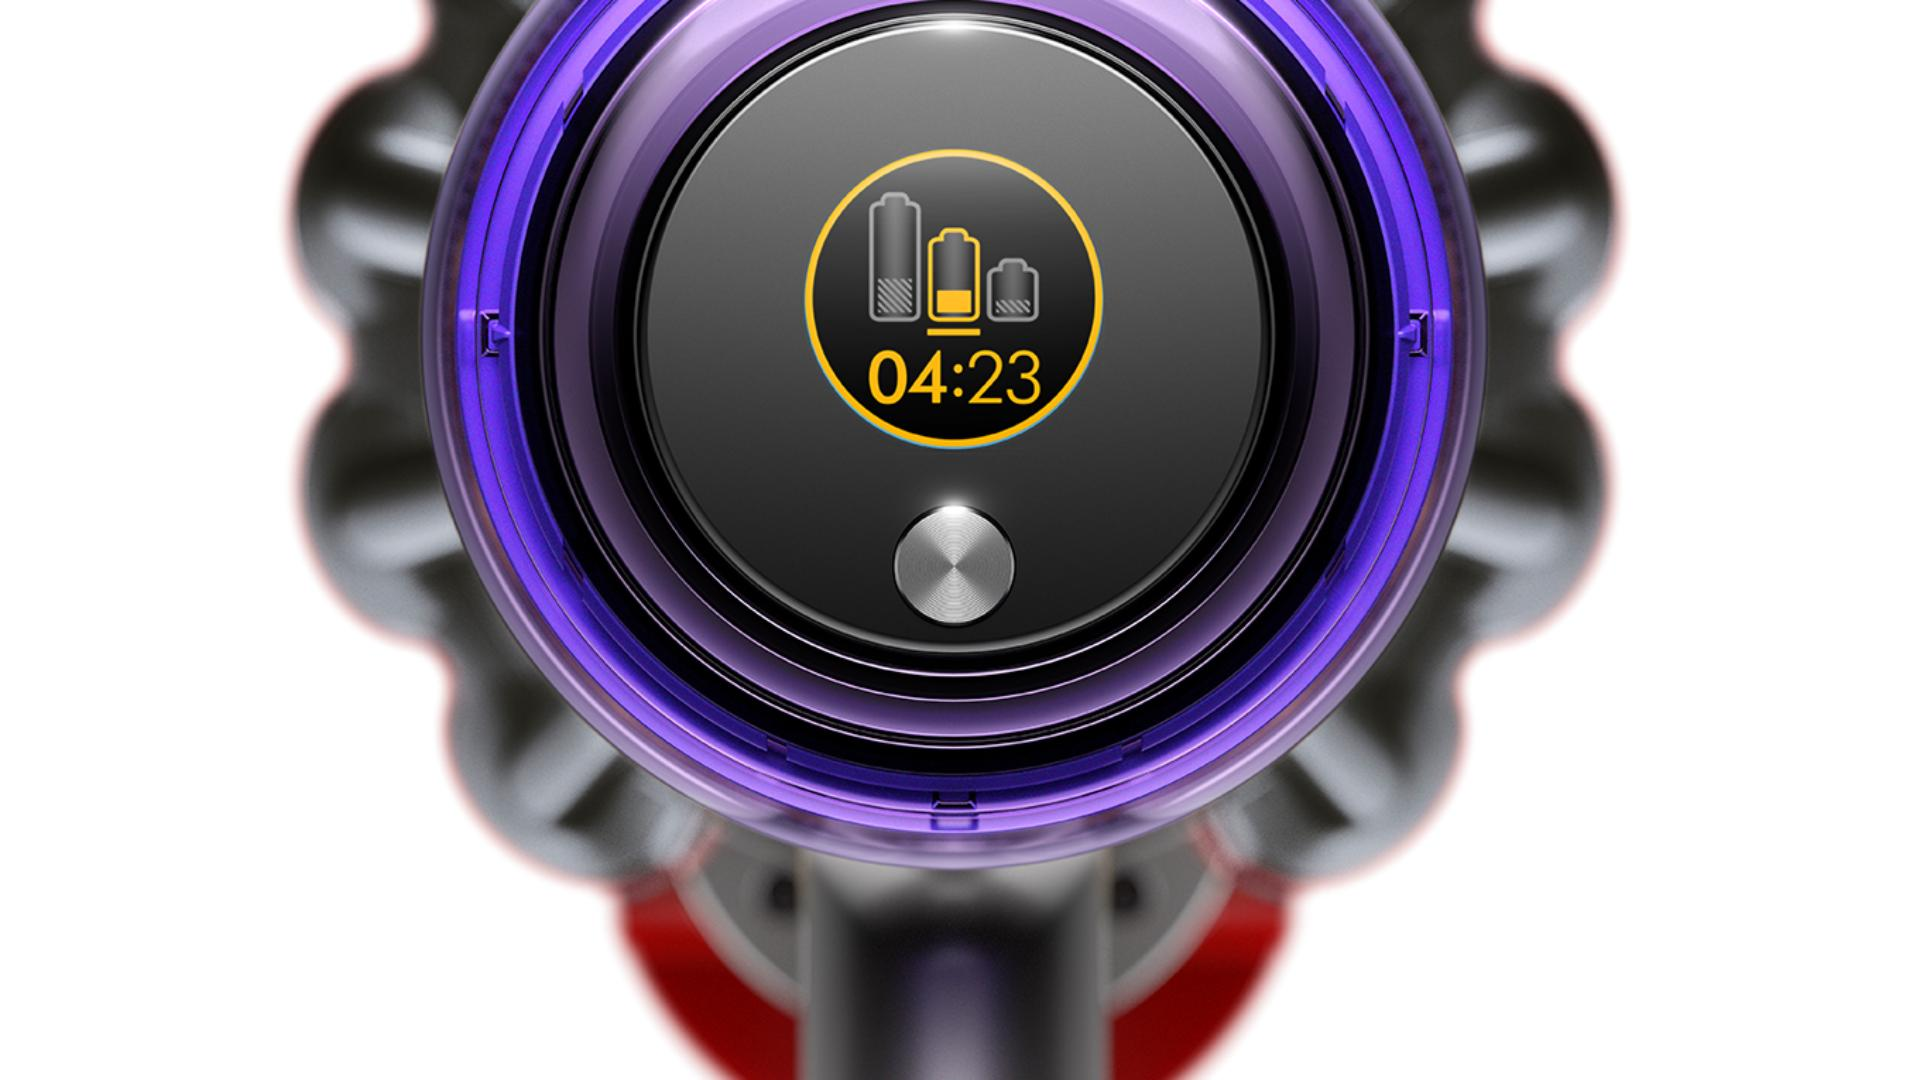 Dyson V11™ vacuum screen showing remaining run time